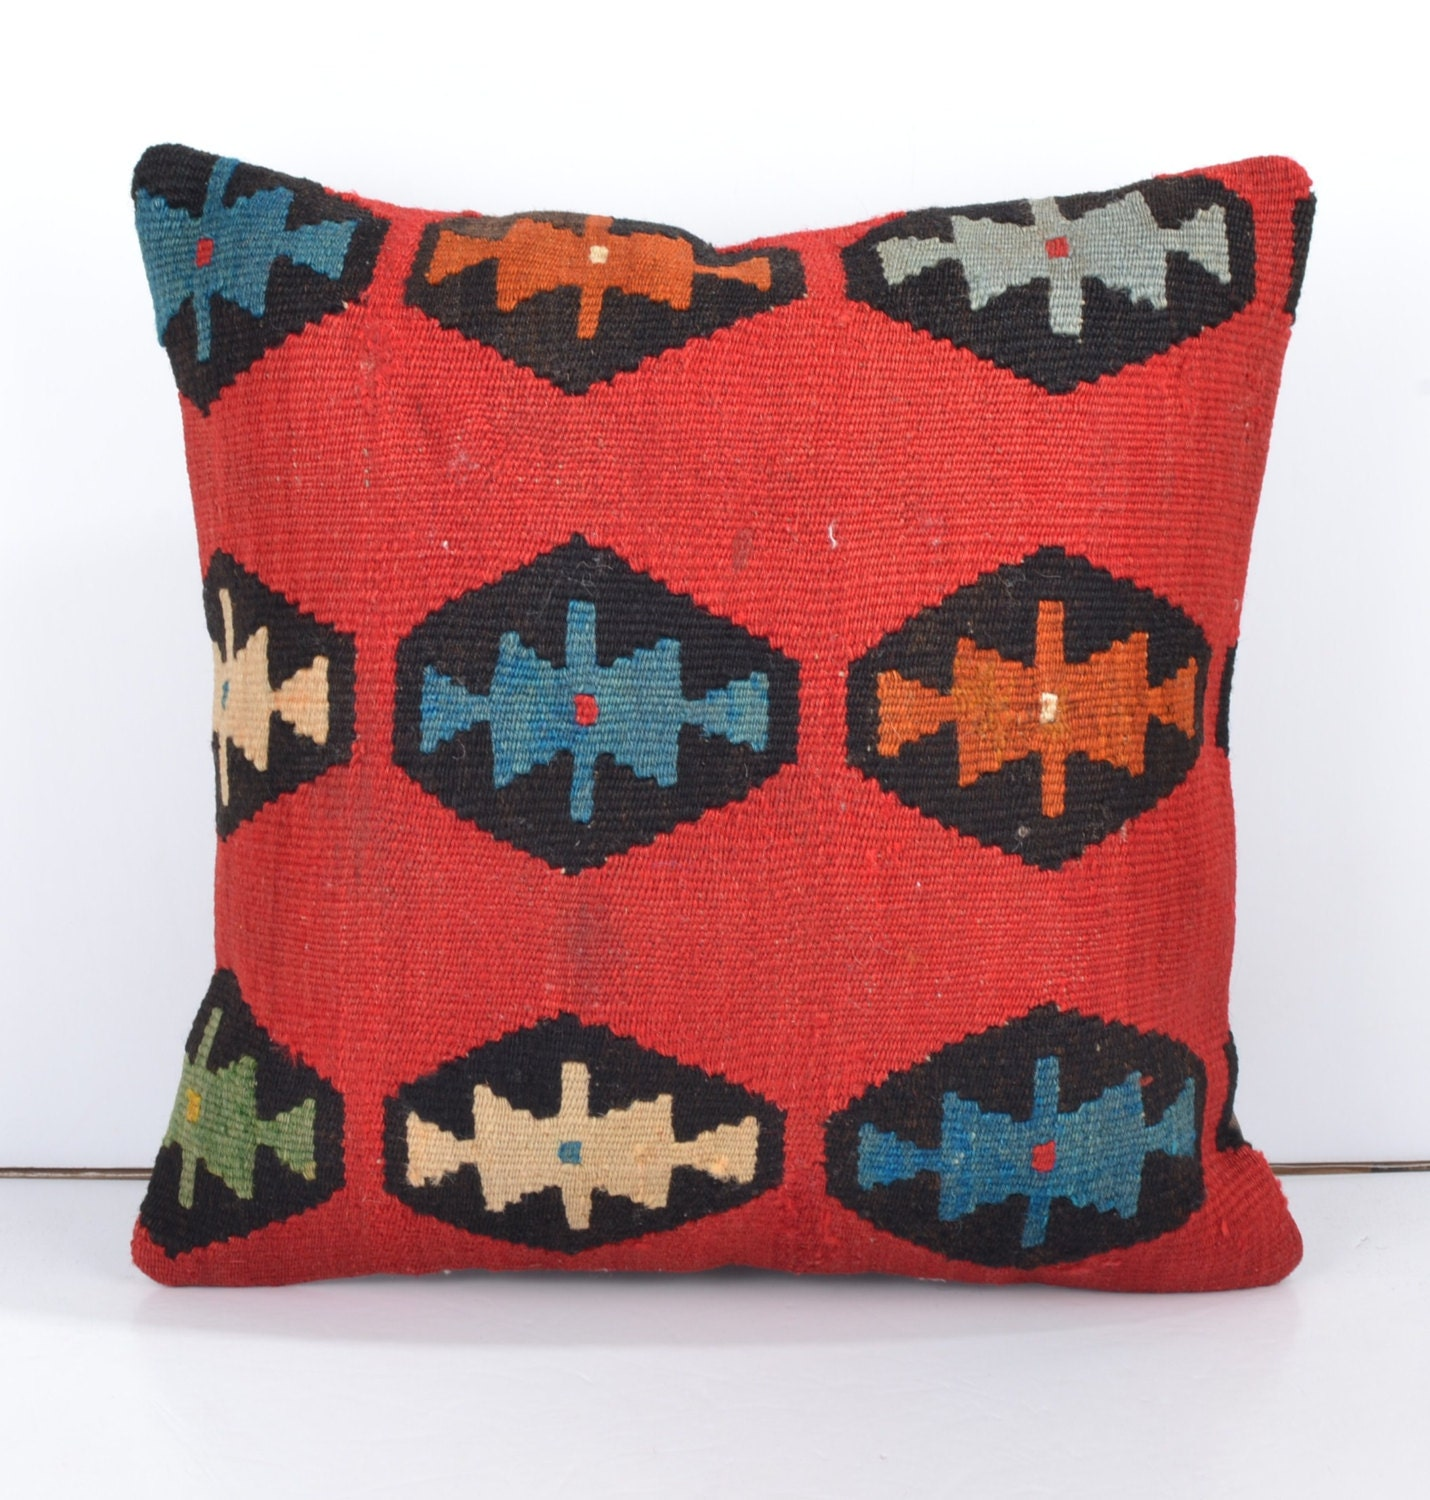 Southwestern Throw Pillows For Couch : southwestern pillow decorative throw pillow cotton by arastabazaar